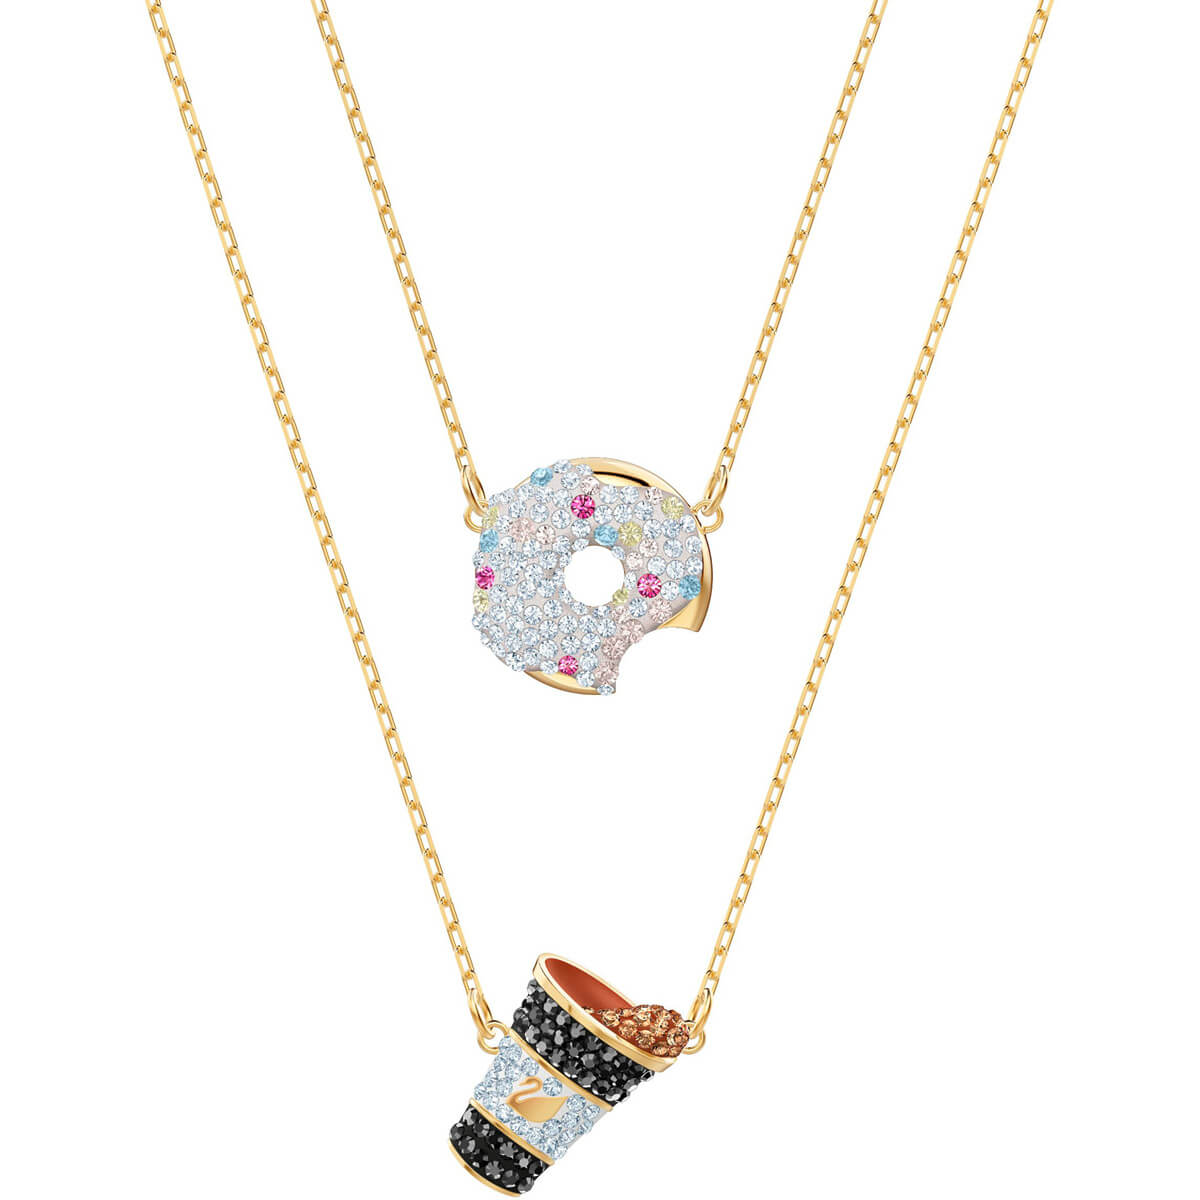 651c2810f8 Nicest Donut and Coffee Multi-Colored Gold Plating Necklace Set